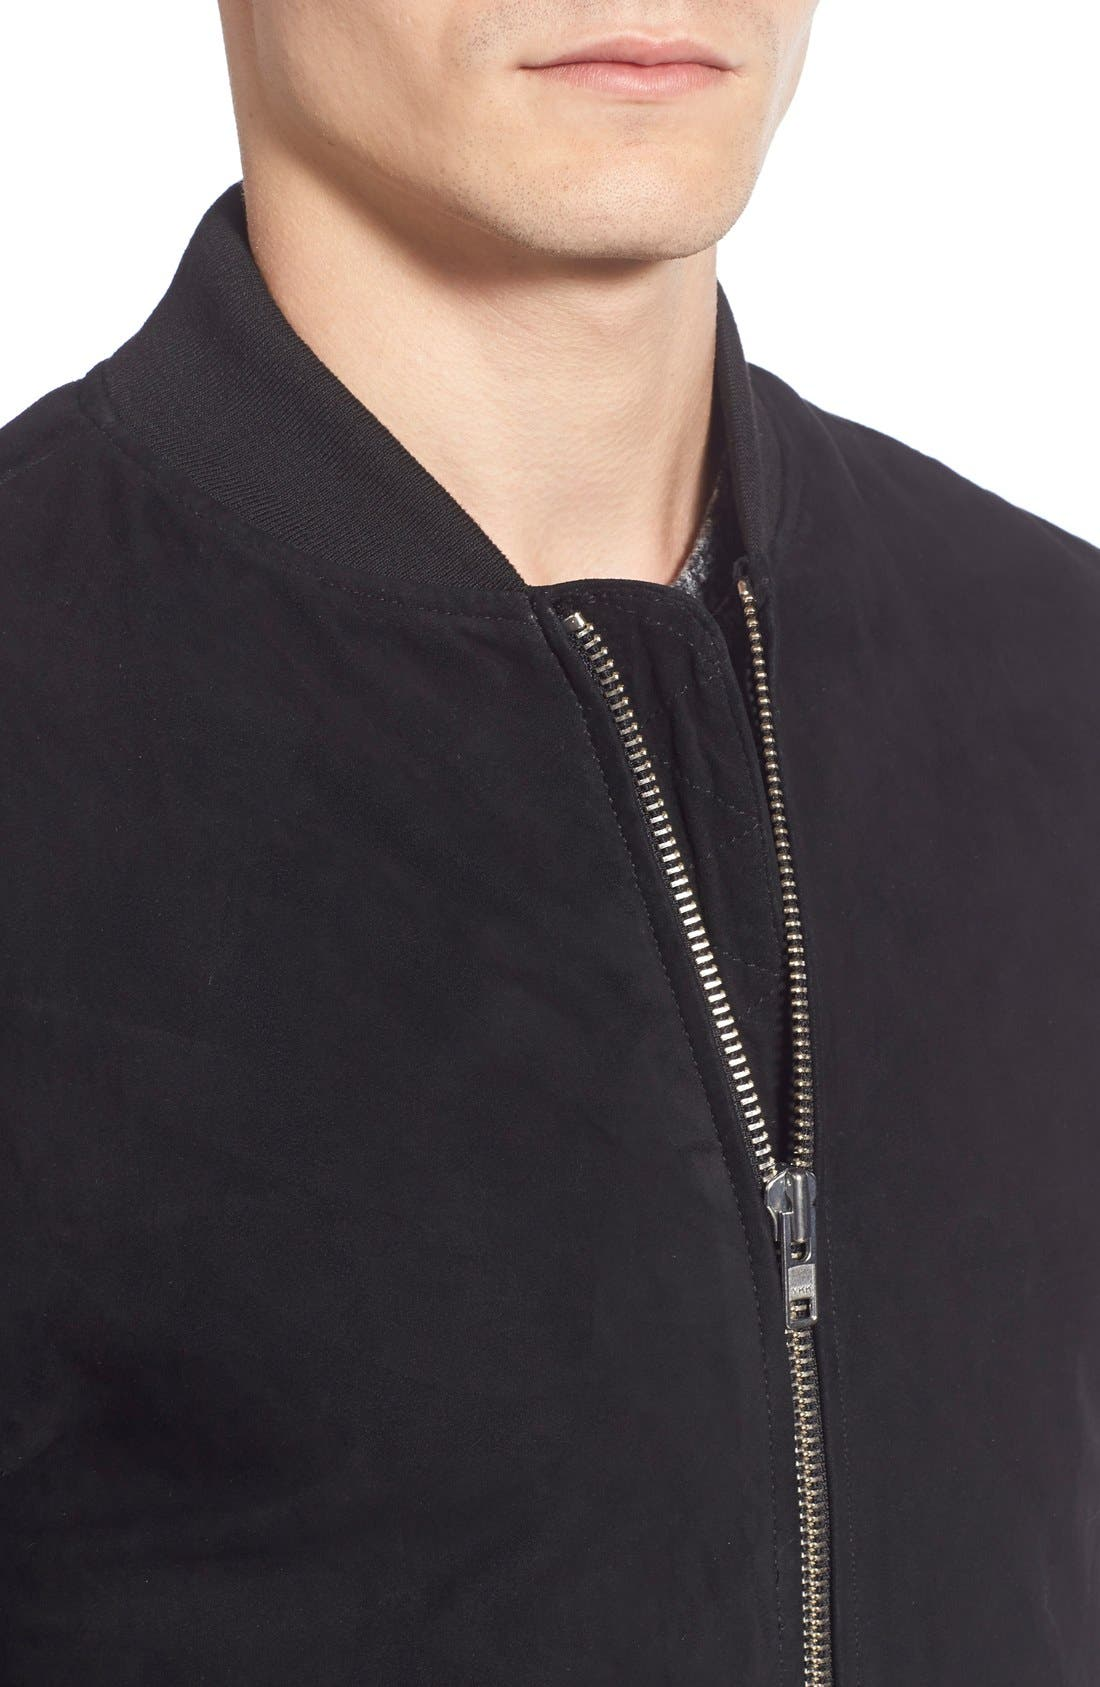 Suede Varsity Jacket with Leather Sleeves,                             Alternate thumbnail 5, color,                             001